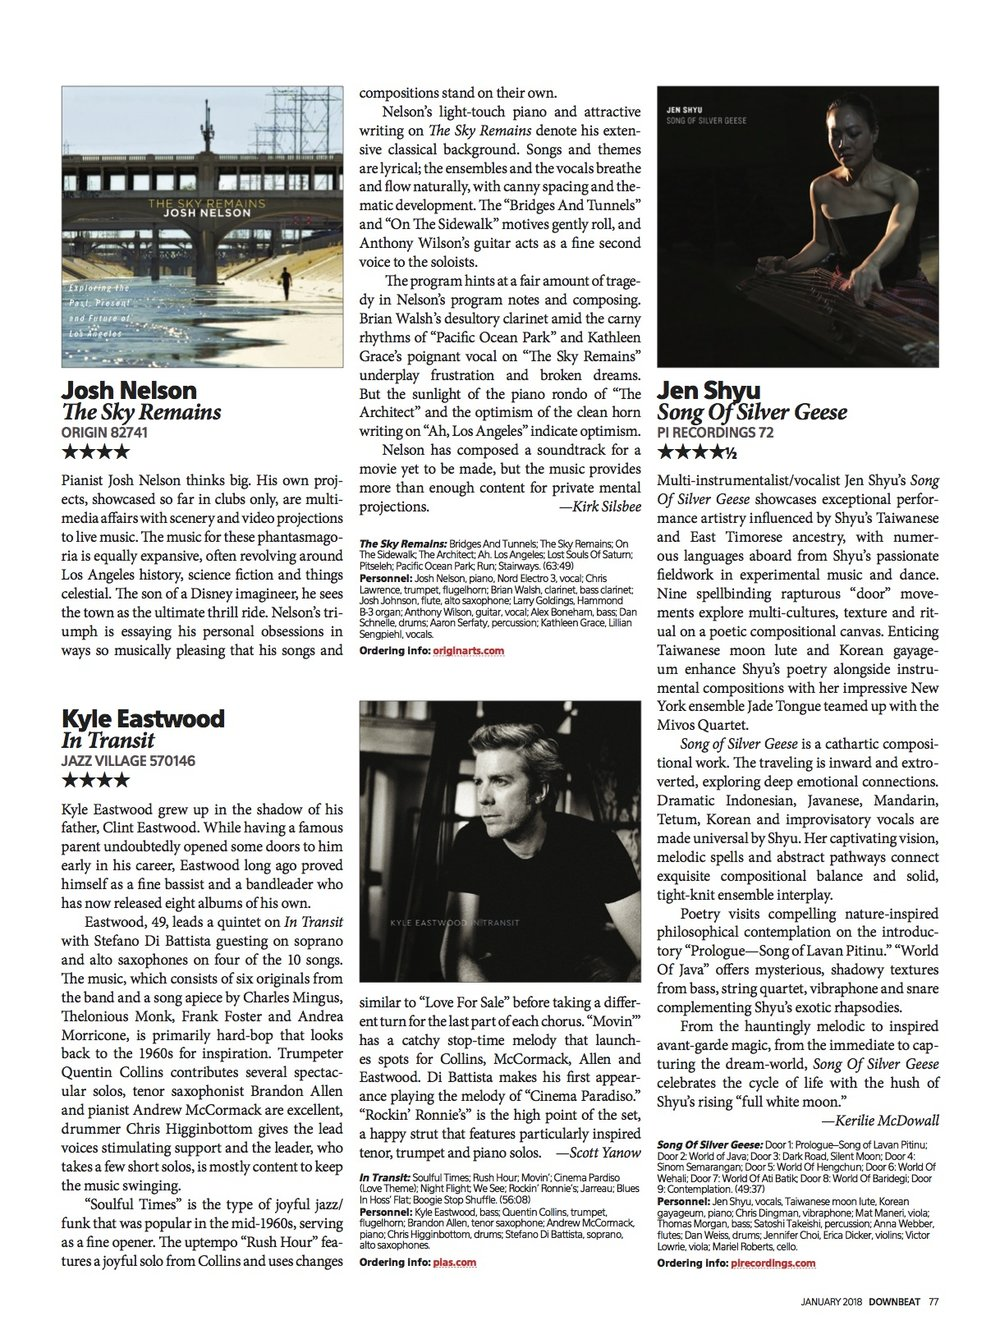 Review in Downbeat Magazine of latest Kyle Eastwood album 'In Transit'. Click to enlarge.